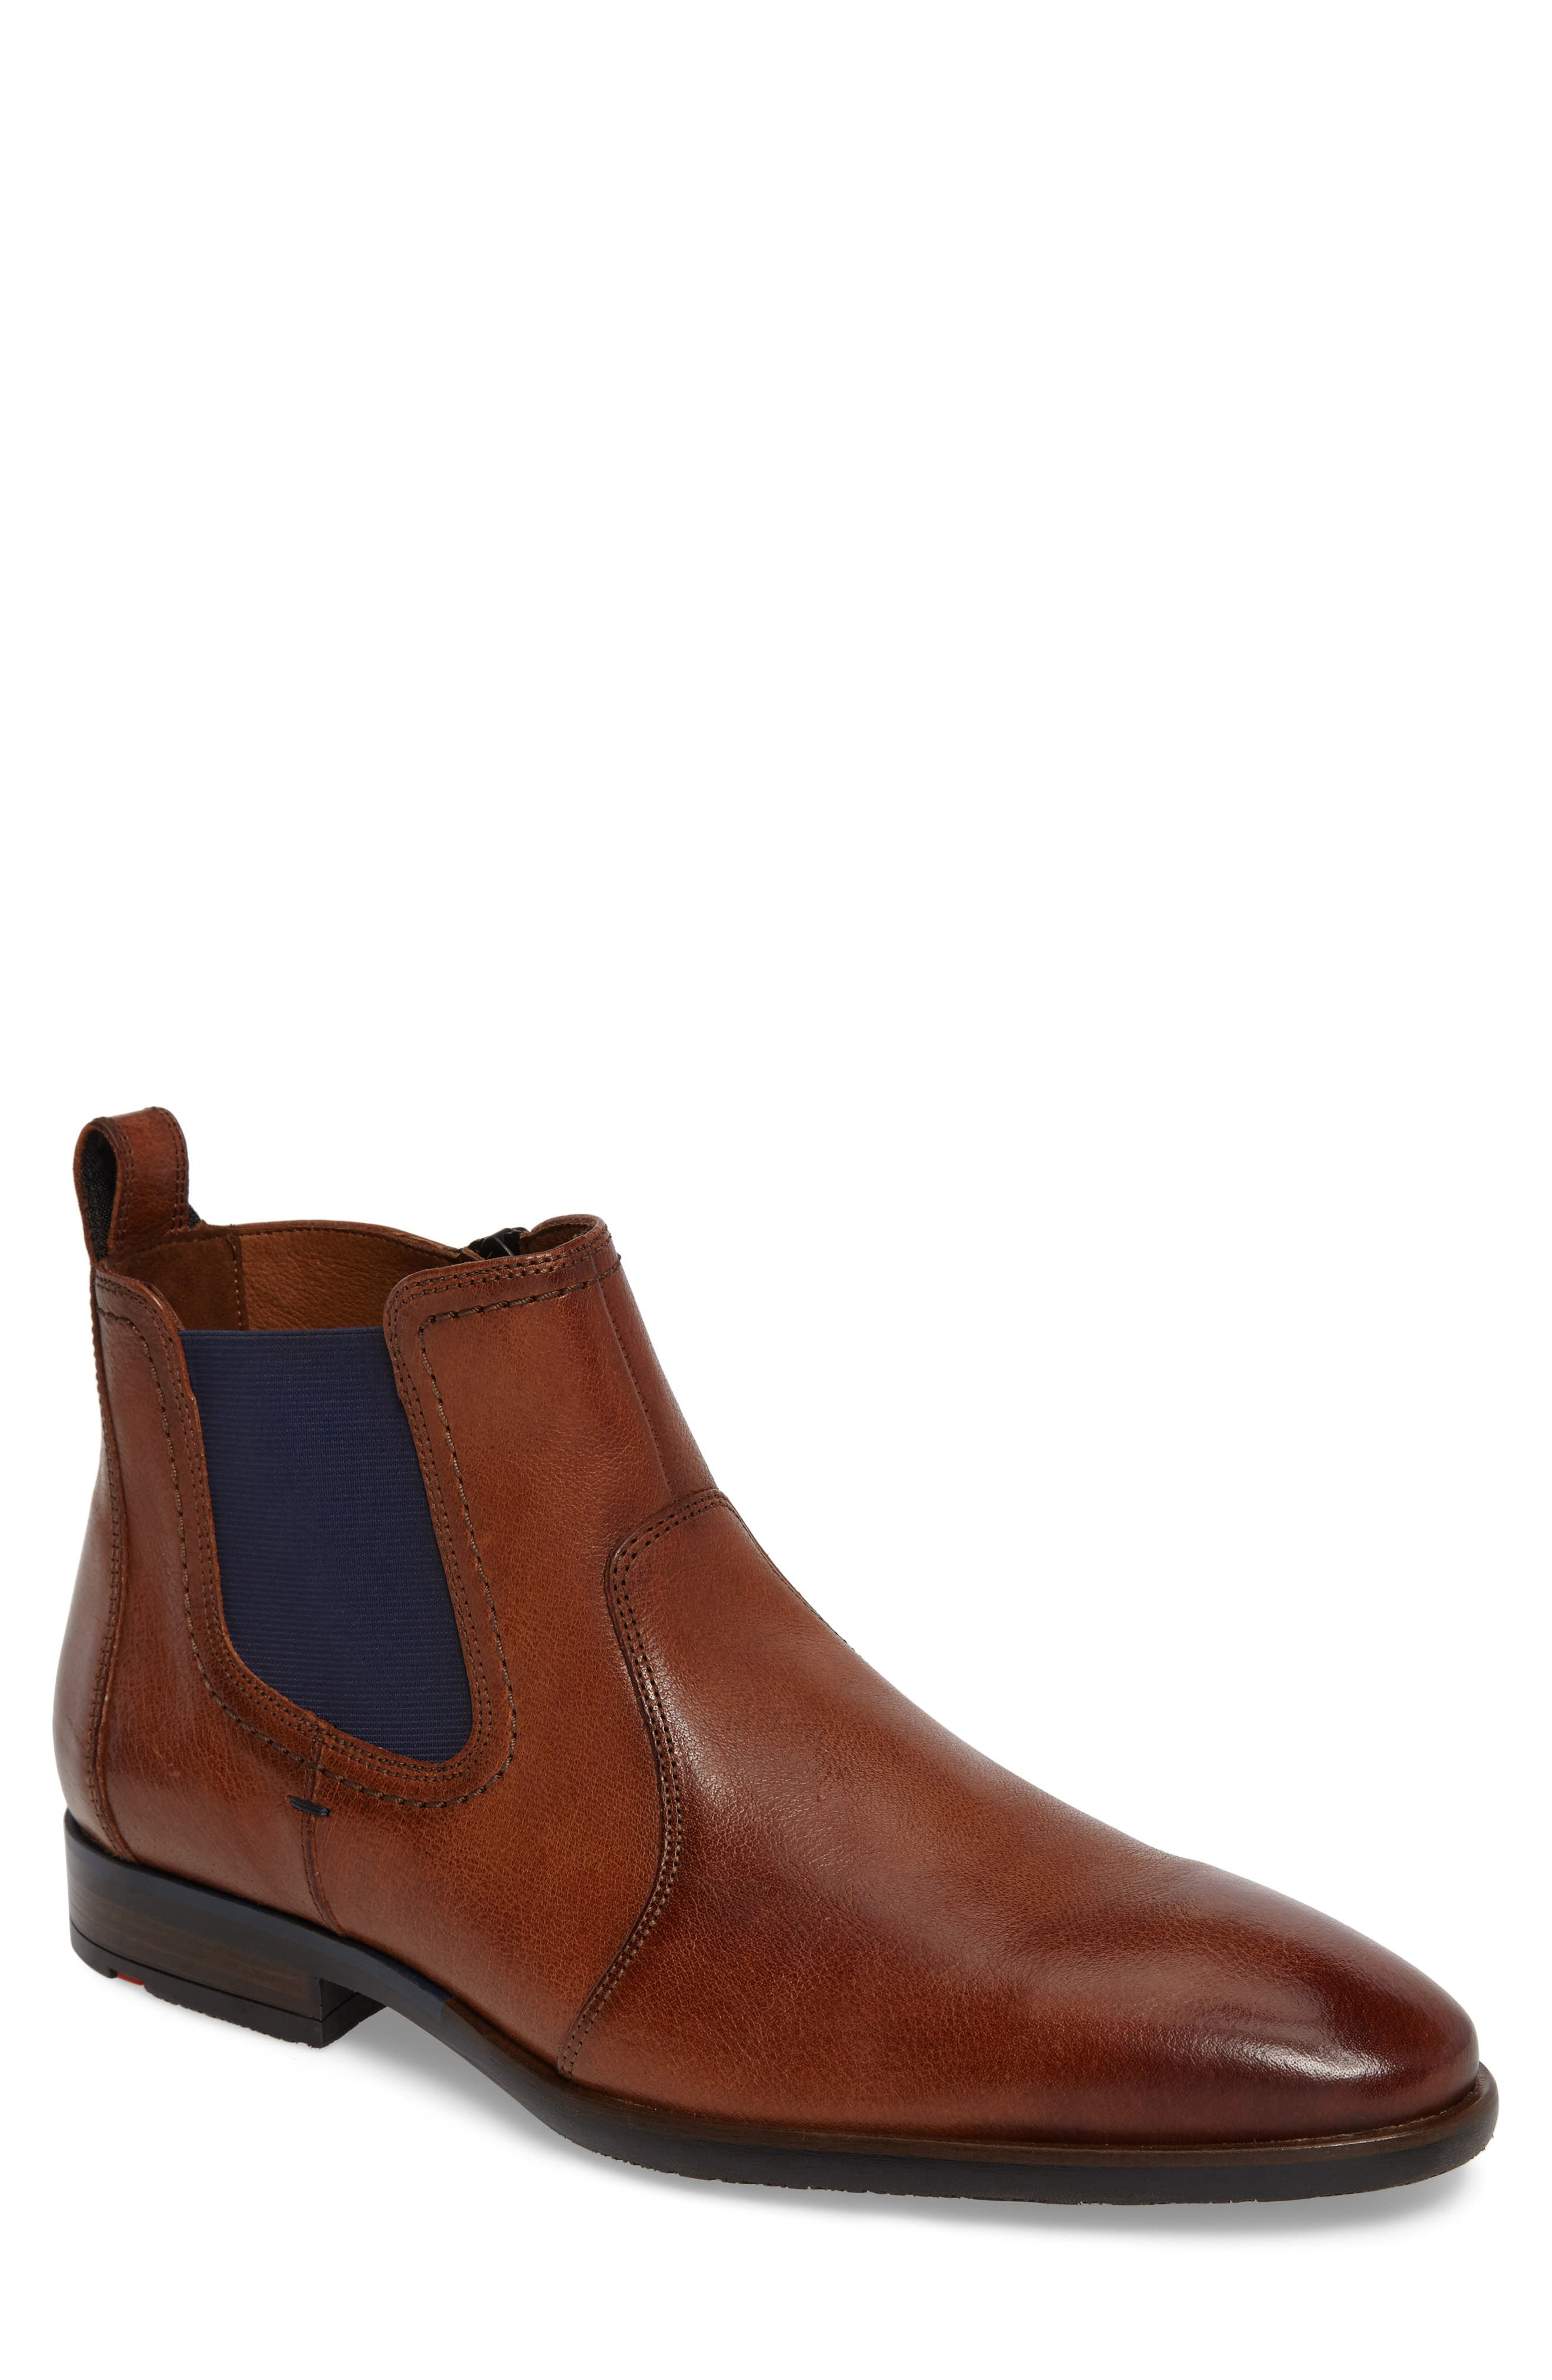 Dylan Chelsea Boot,                         Main,                         color, Brown Leather